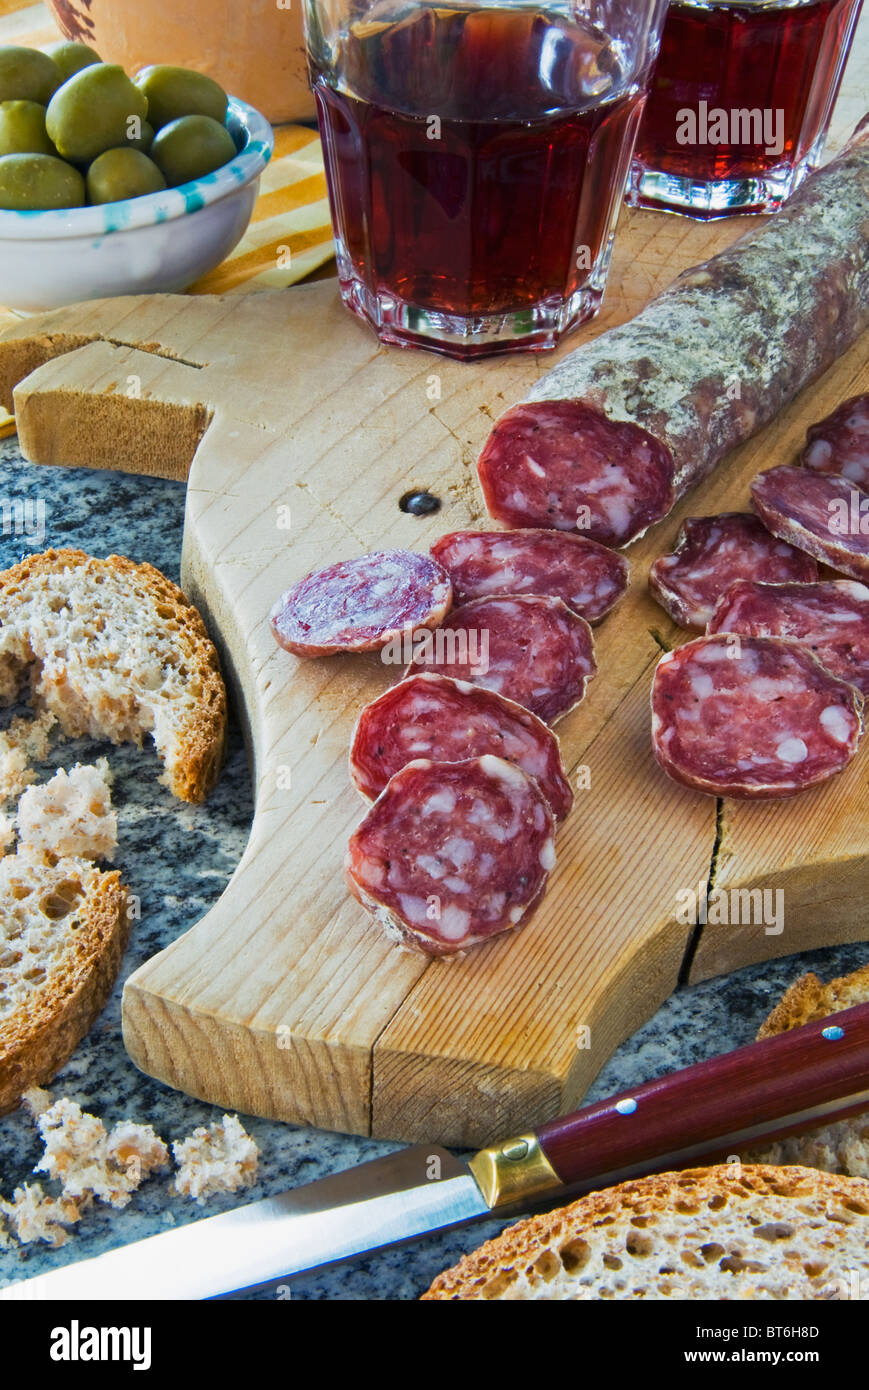 Spanish Fuet Salami Fuet Is Catalan Thin Cured Dry Sausage Of Pork Meat